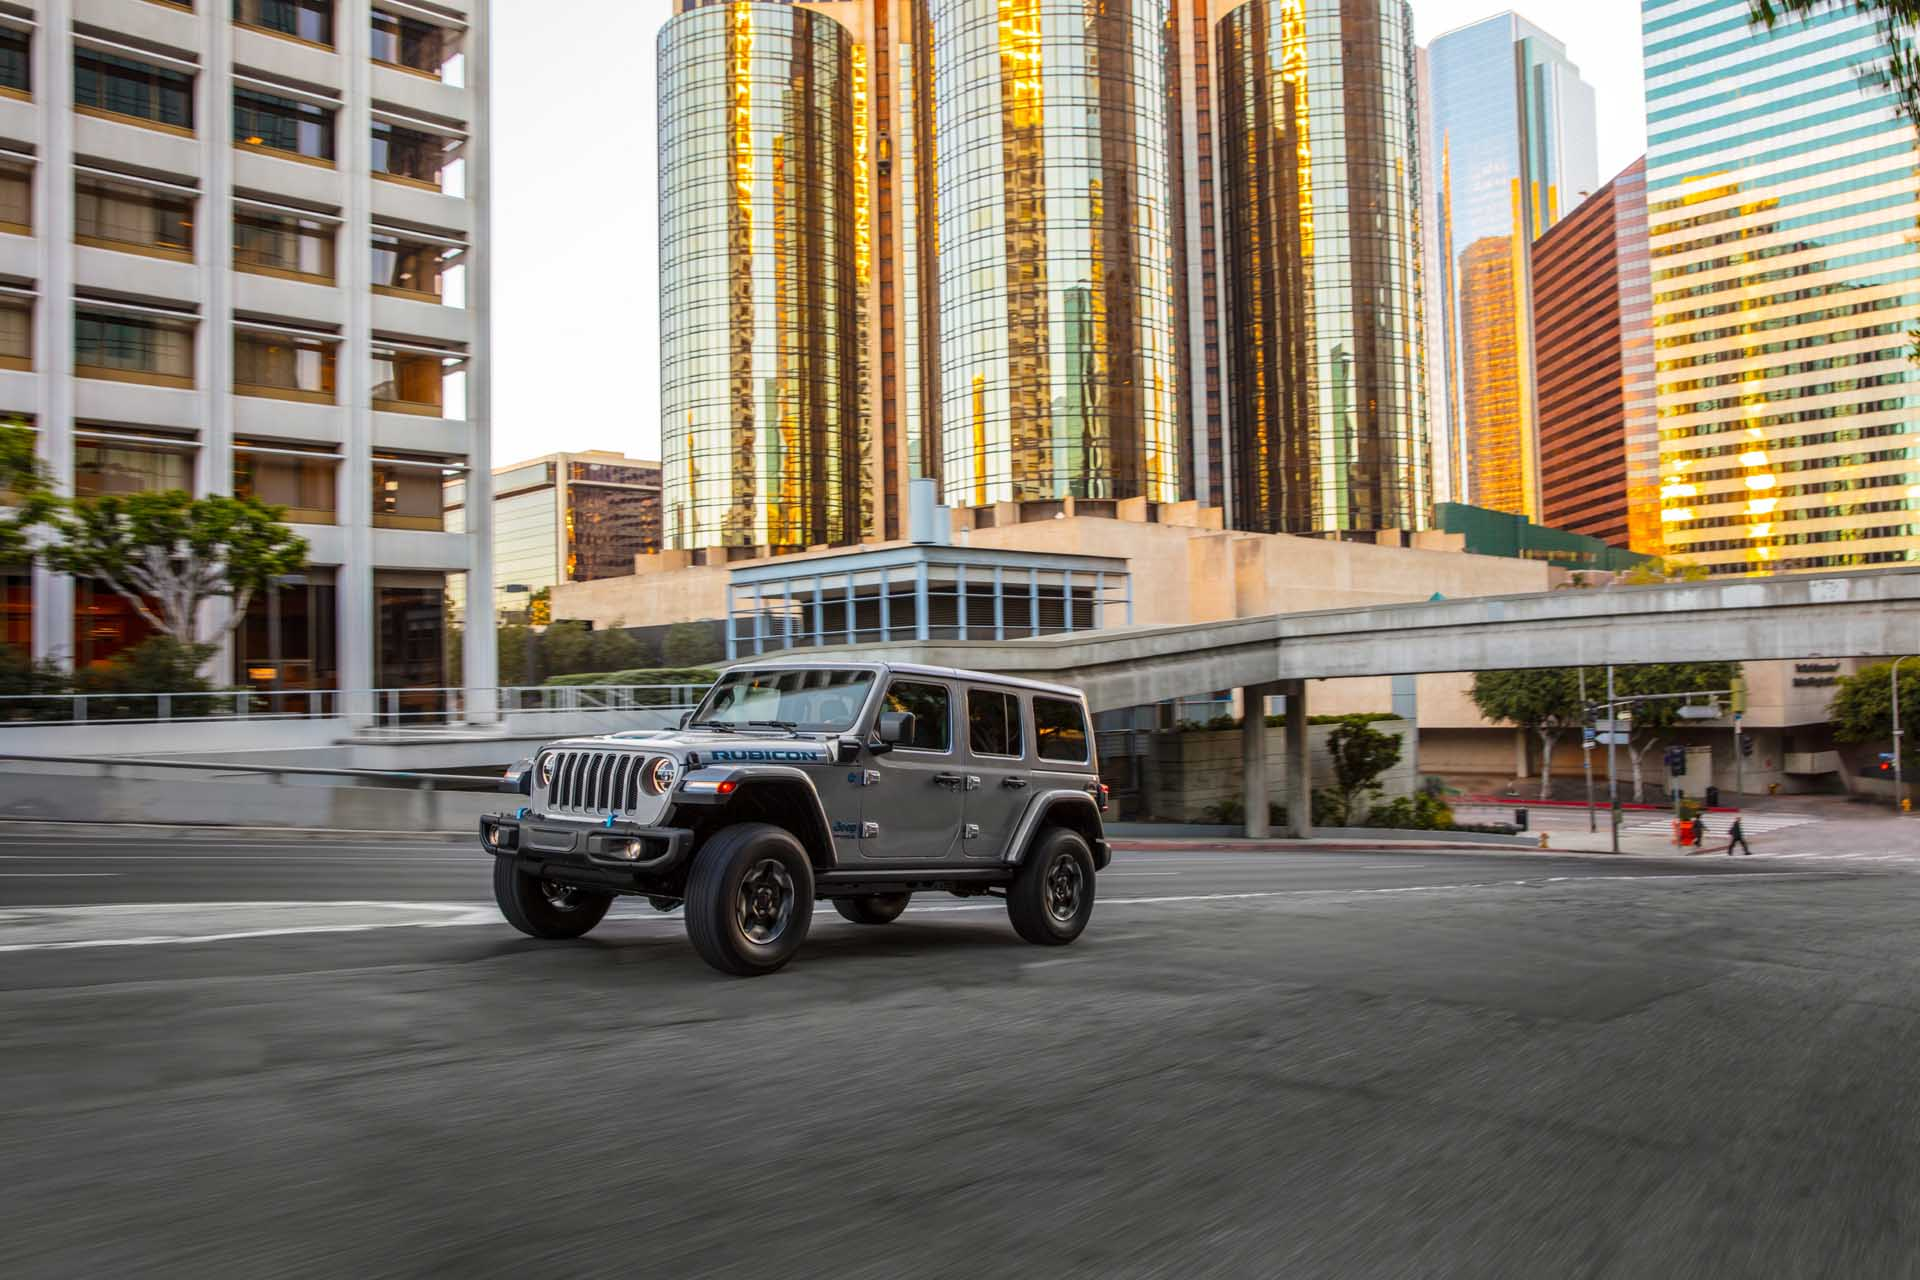 2021 Jeep Wrangler 4xe plug-in hybrid SUV: Most powerful Wrangler yet, and trail-rated at $49,490